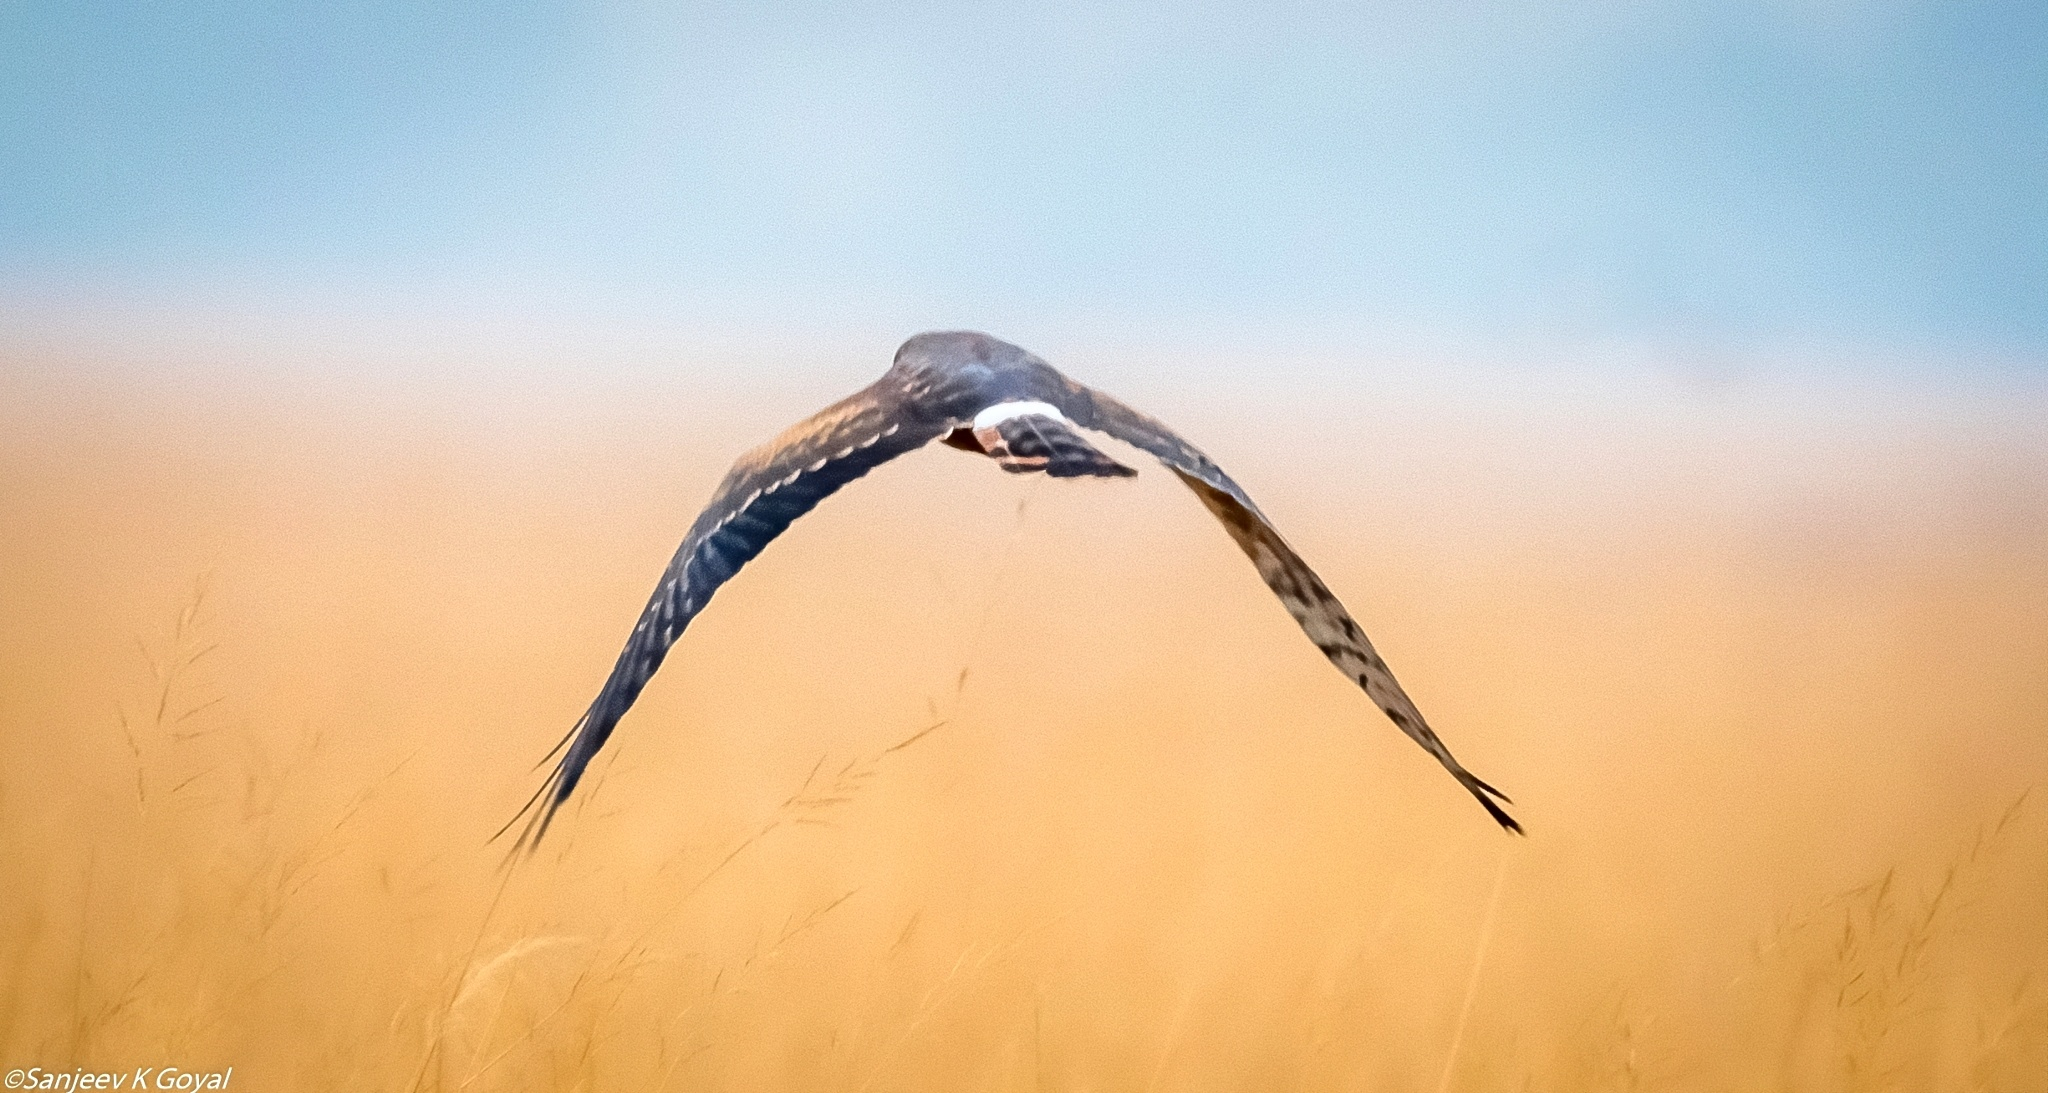 Montagu Harrier by sanjeev.k.goyal.10